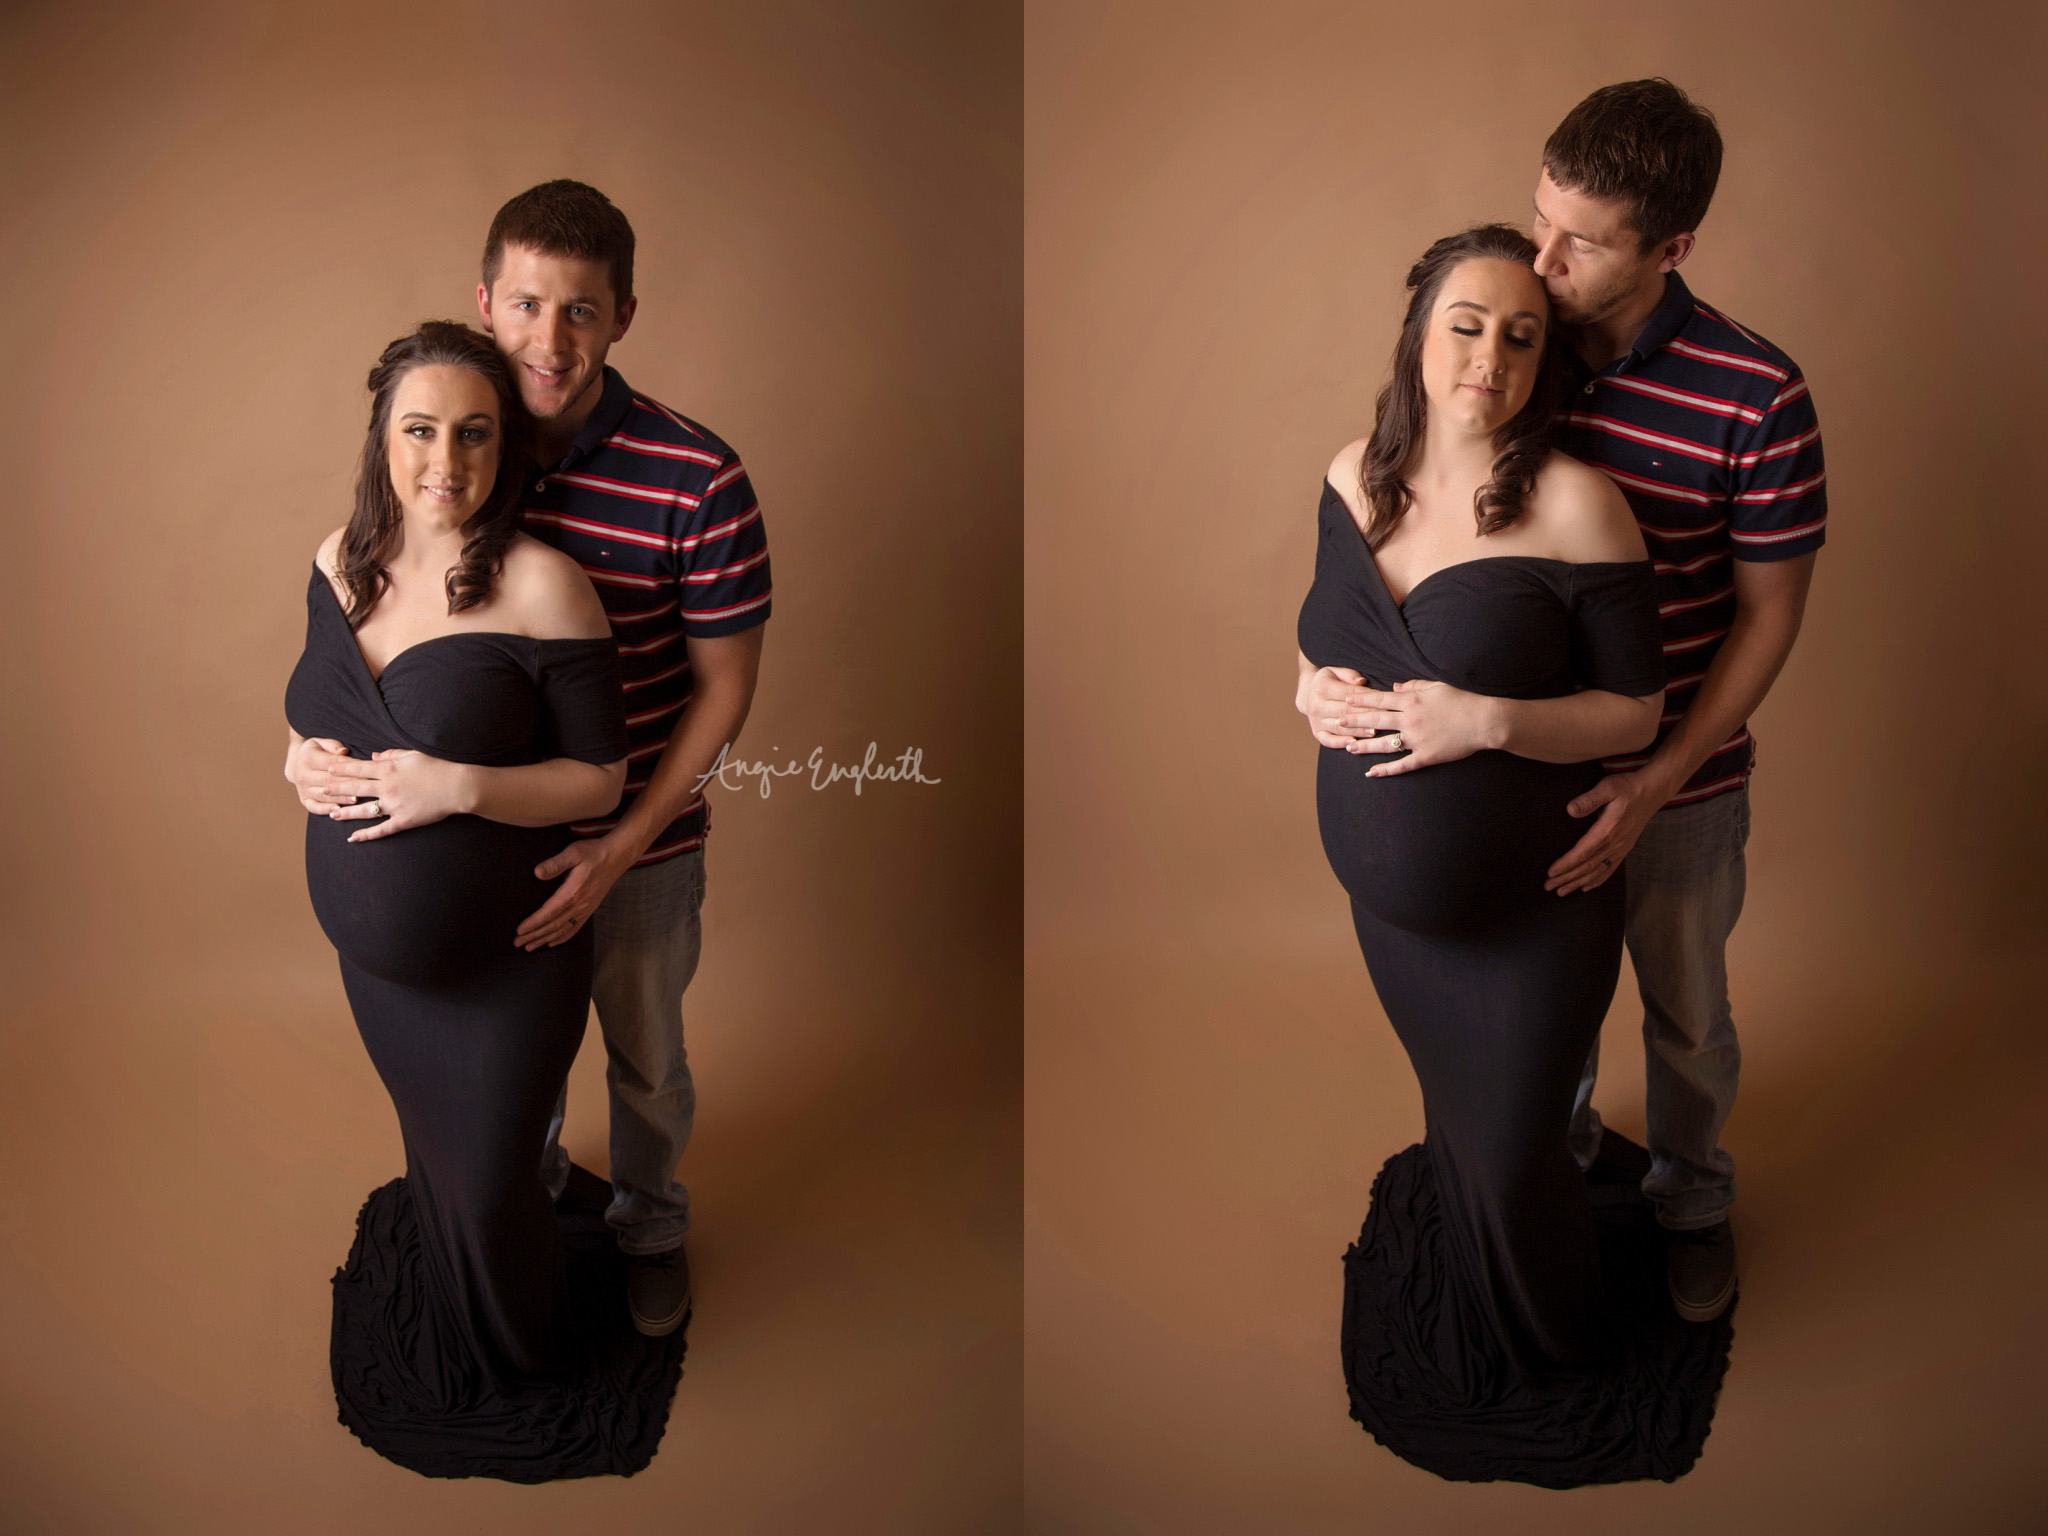 Lancaster_maternity_and_newborn_photographer_angie_englerth_005.jpg